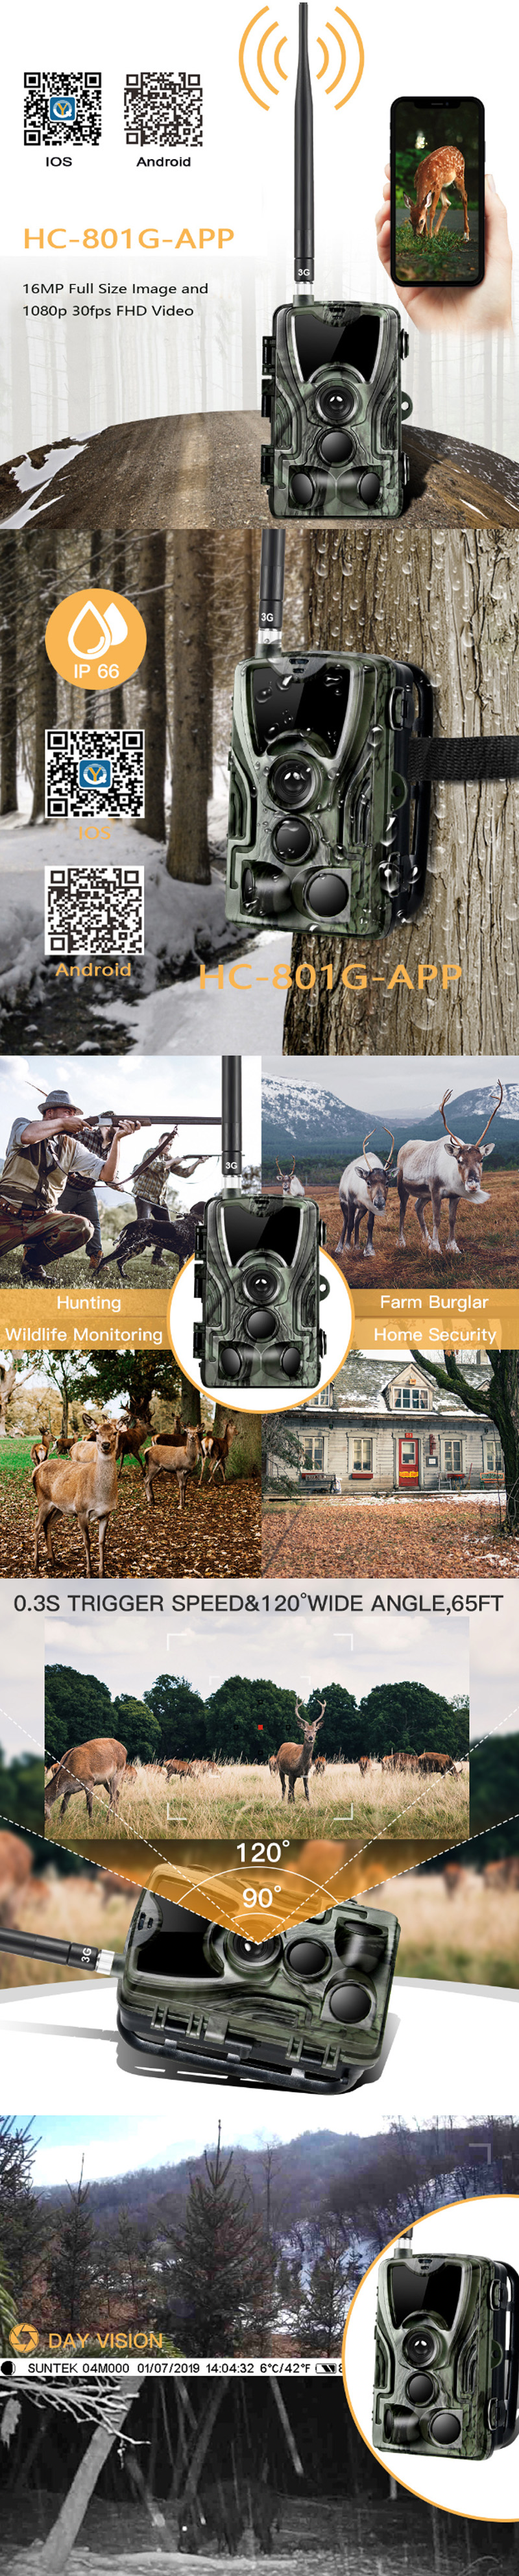 KALOAD HC-801G-APP 1080P Hunting Camera Waterproof HD Infrared Scouting Wildlife Night Vision Trail Camera